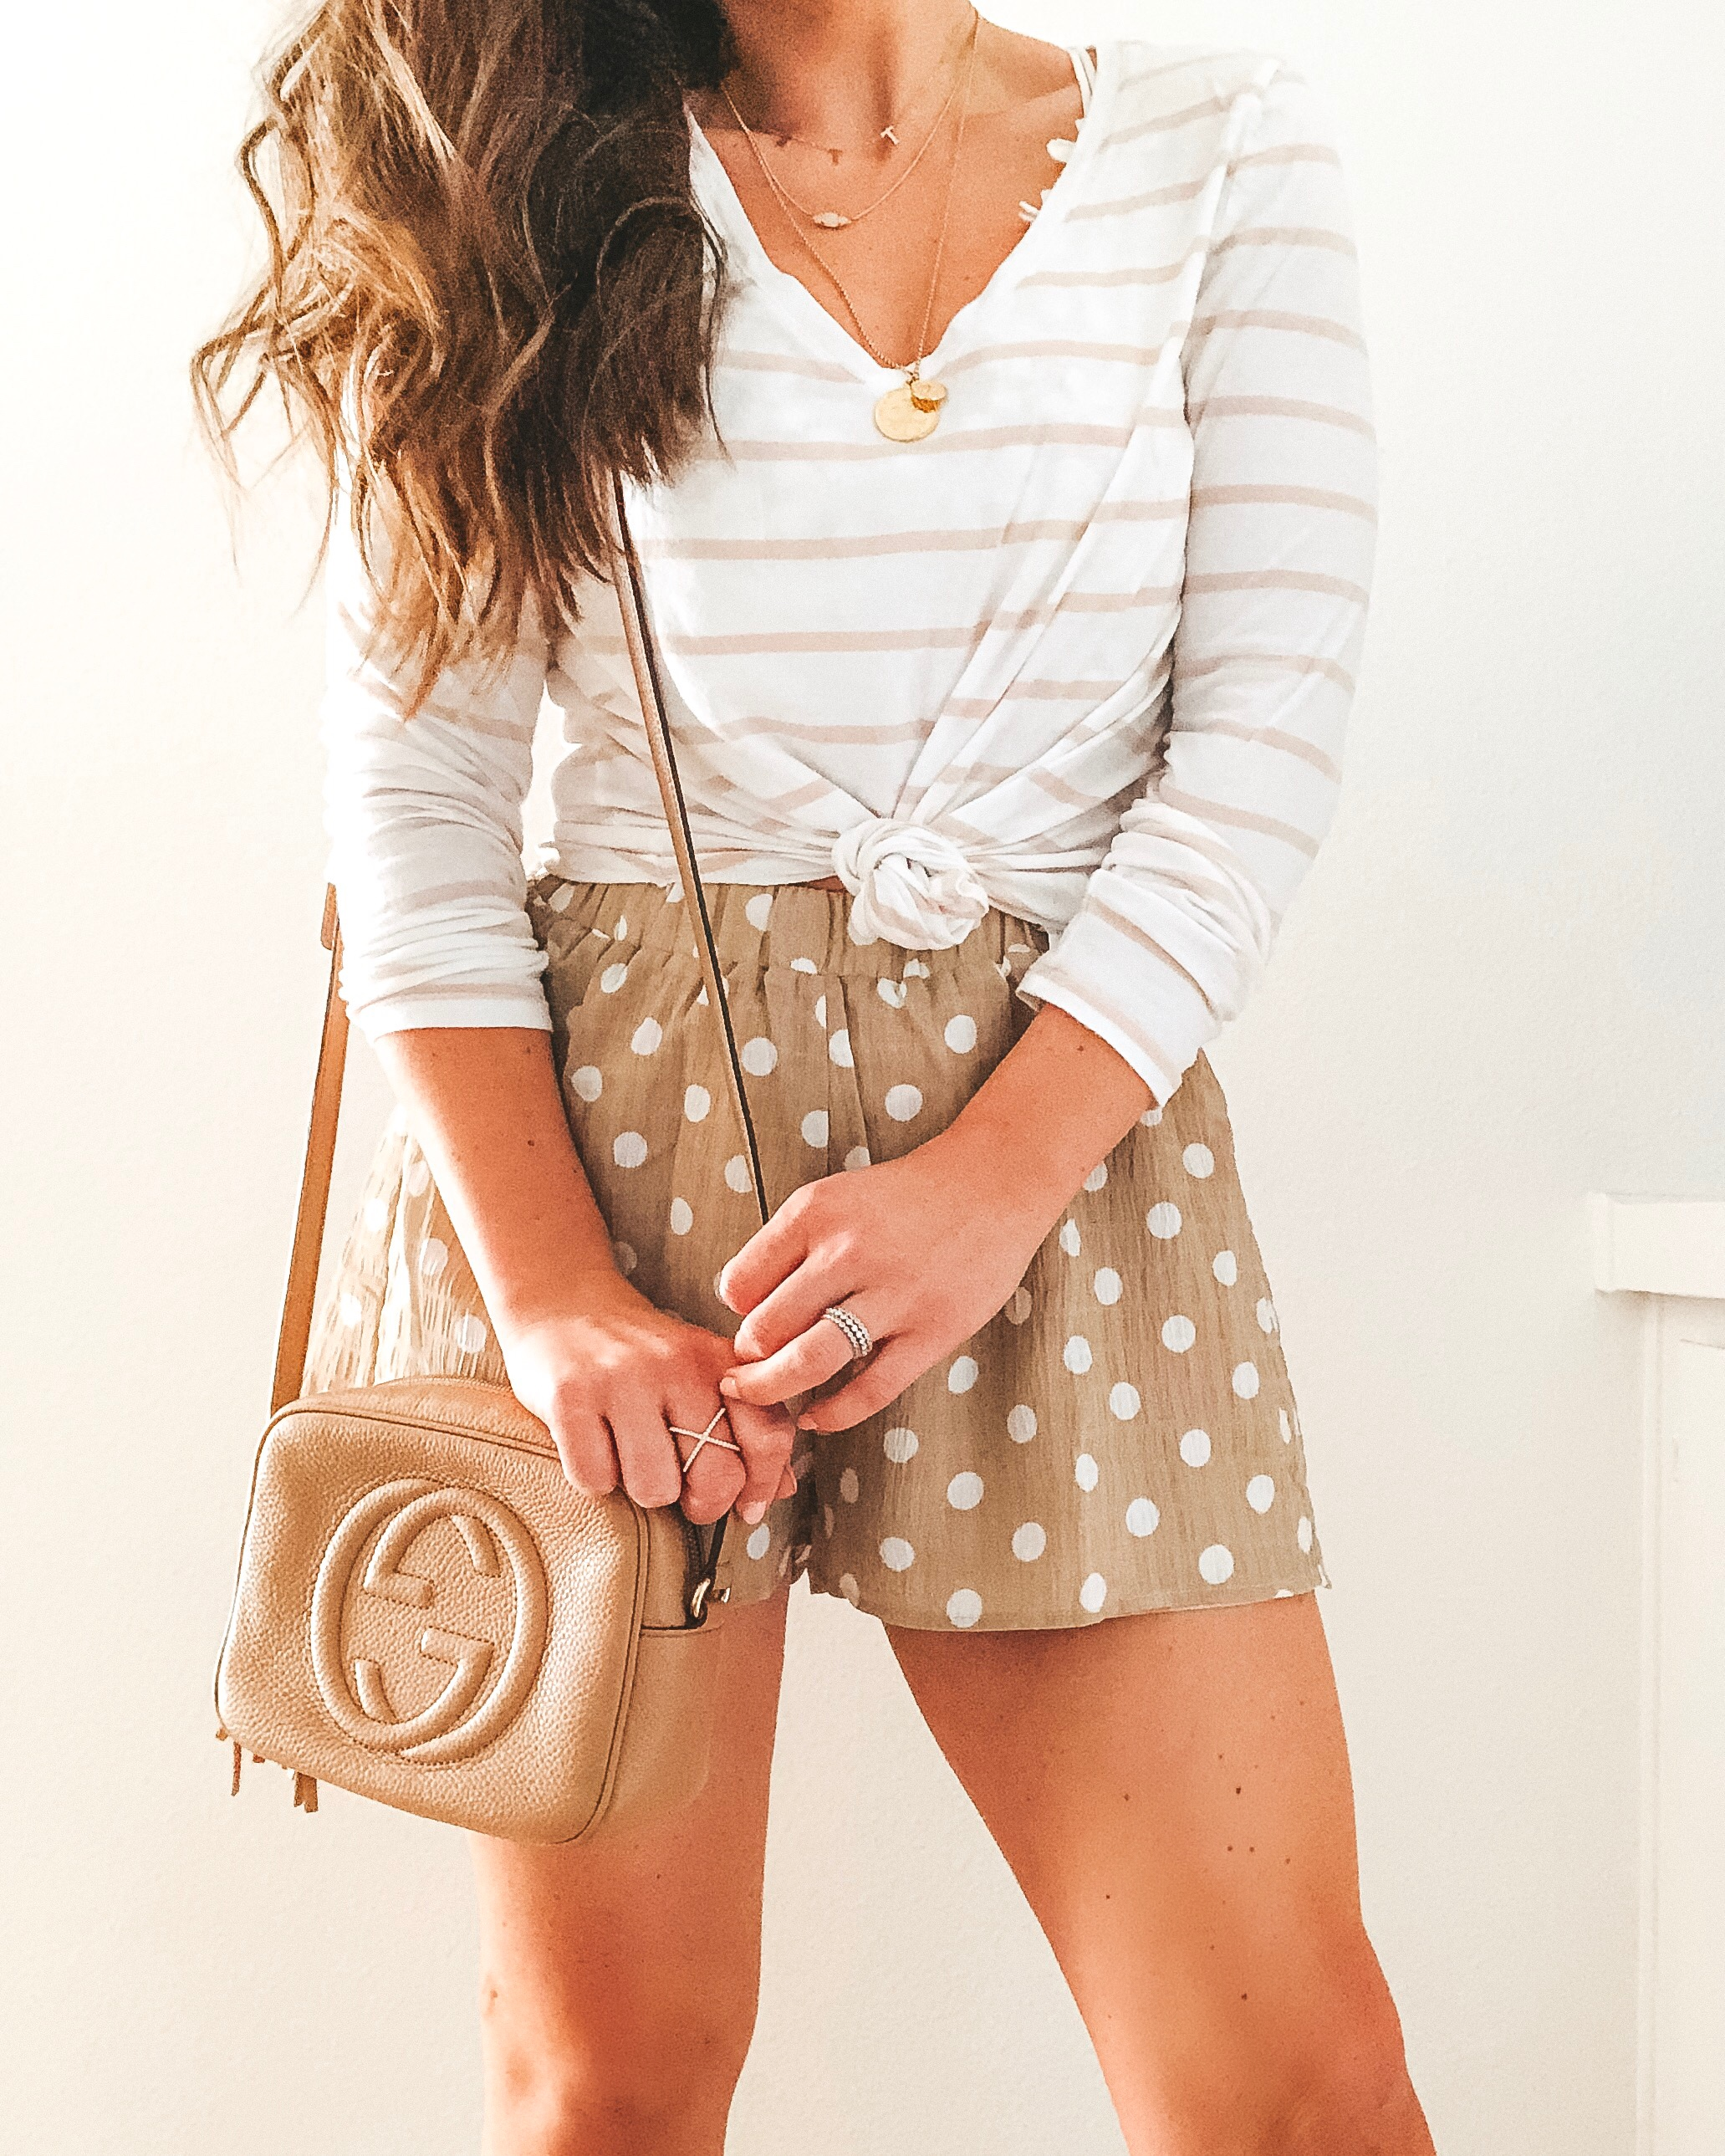 Superdown flutter shorts, Gucci soho disco bag, khaki and white stripe tee, and layered necklaces.  Cute neutral outfit for spring.